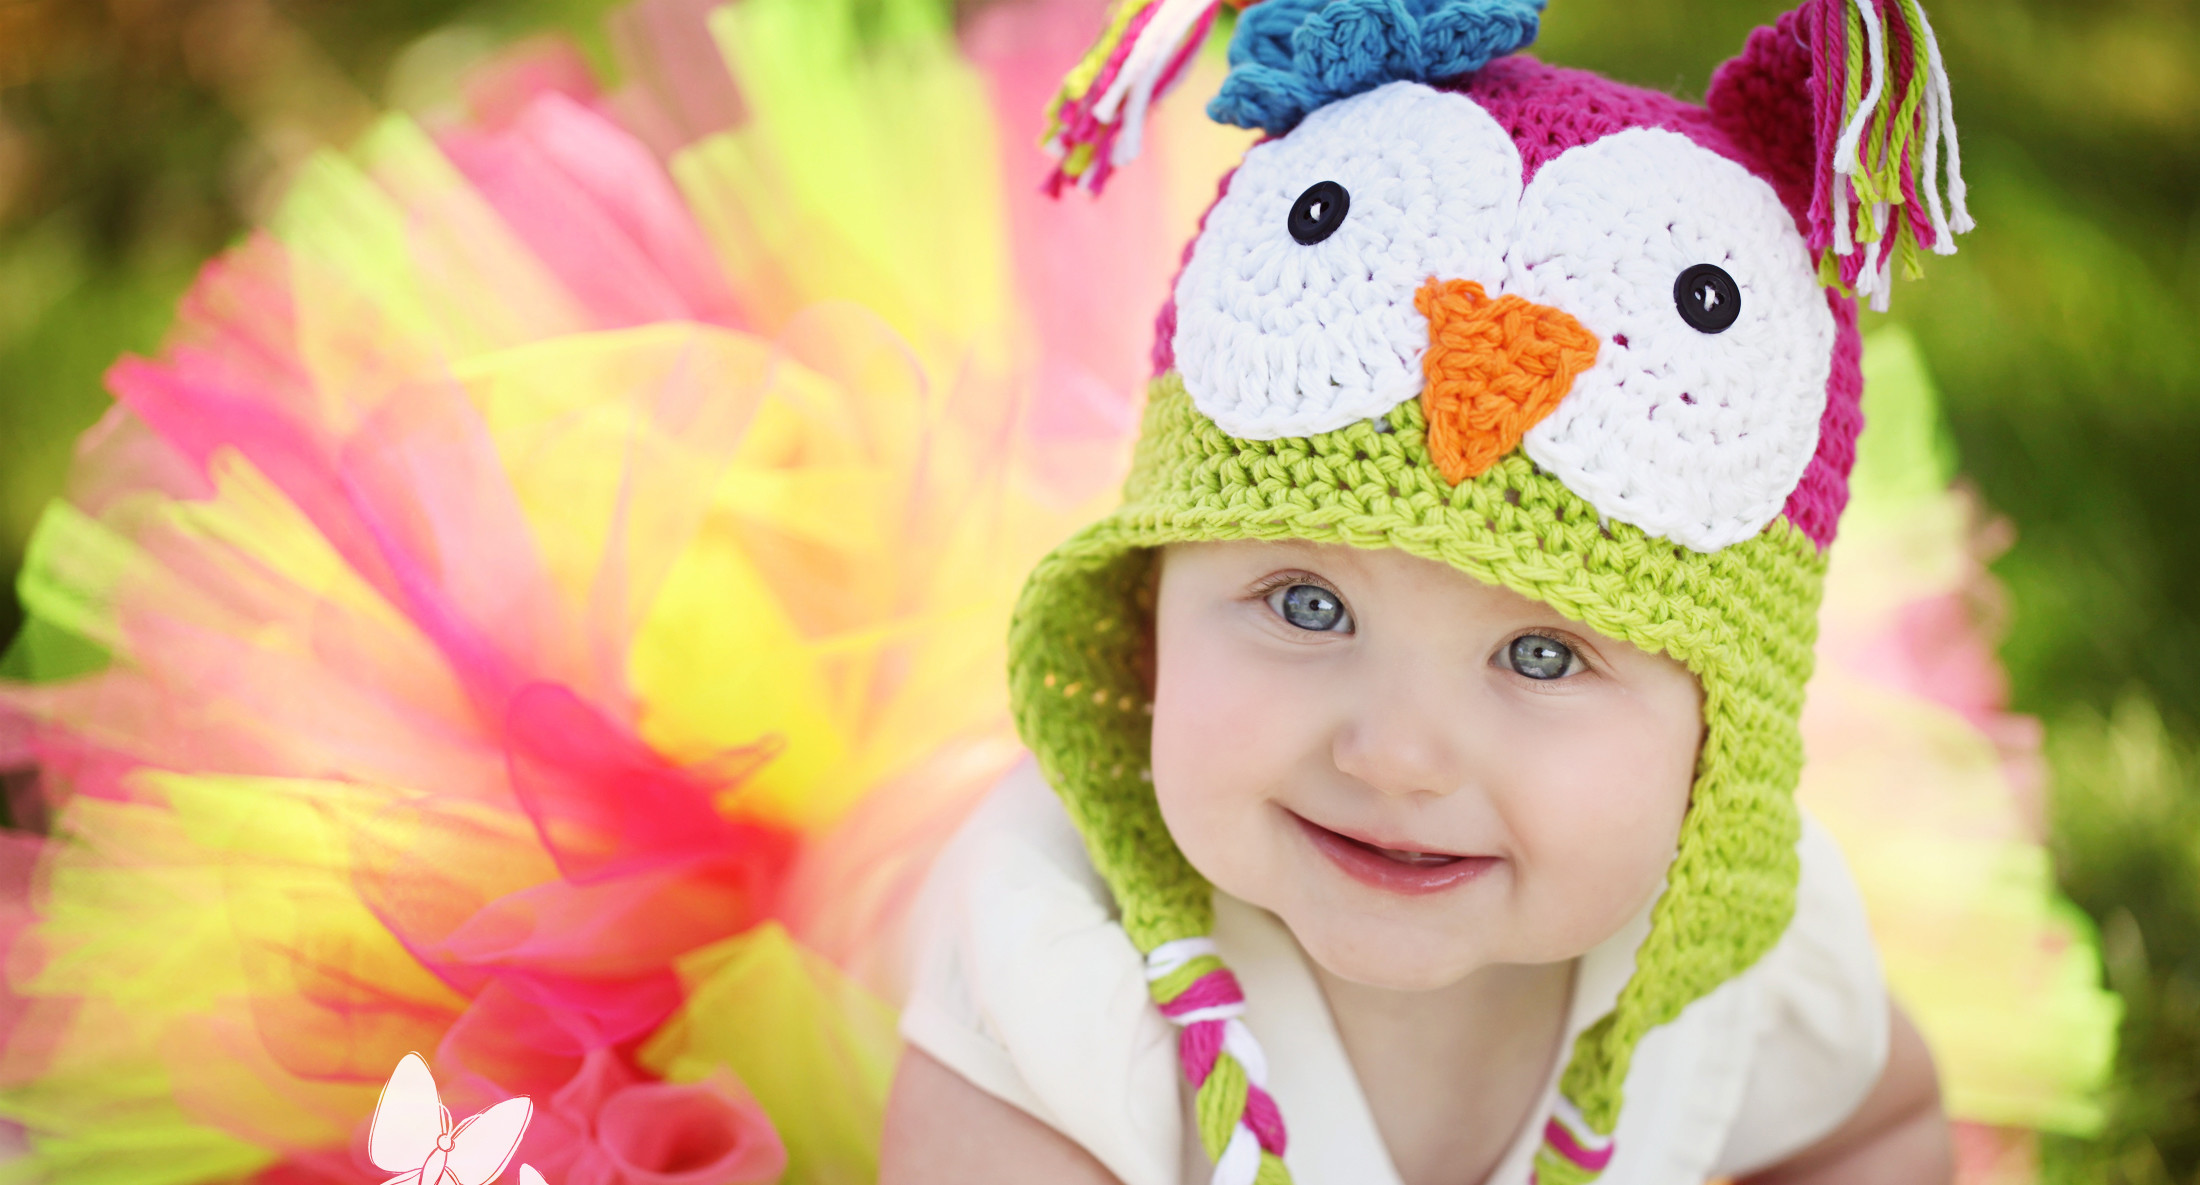 Cute Baby Smile Hd Wallpapers Pics Download: Smiling Cute Babies Wallpaper (62+ Images